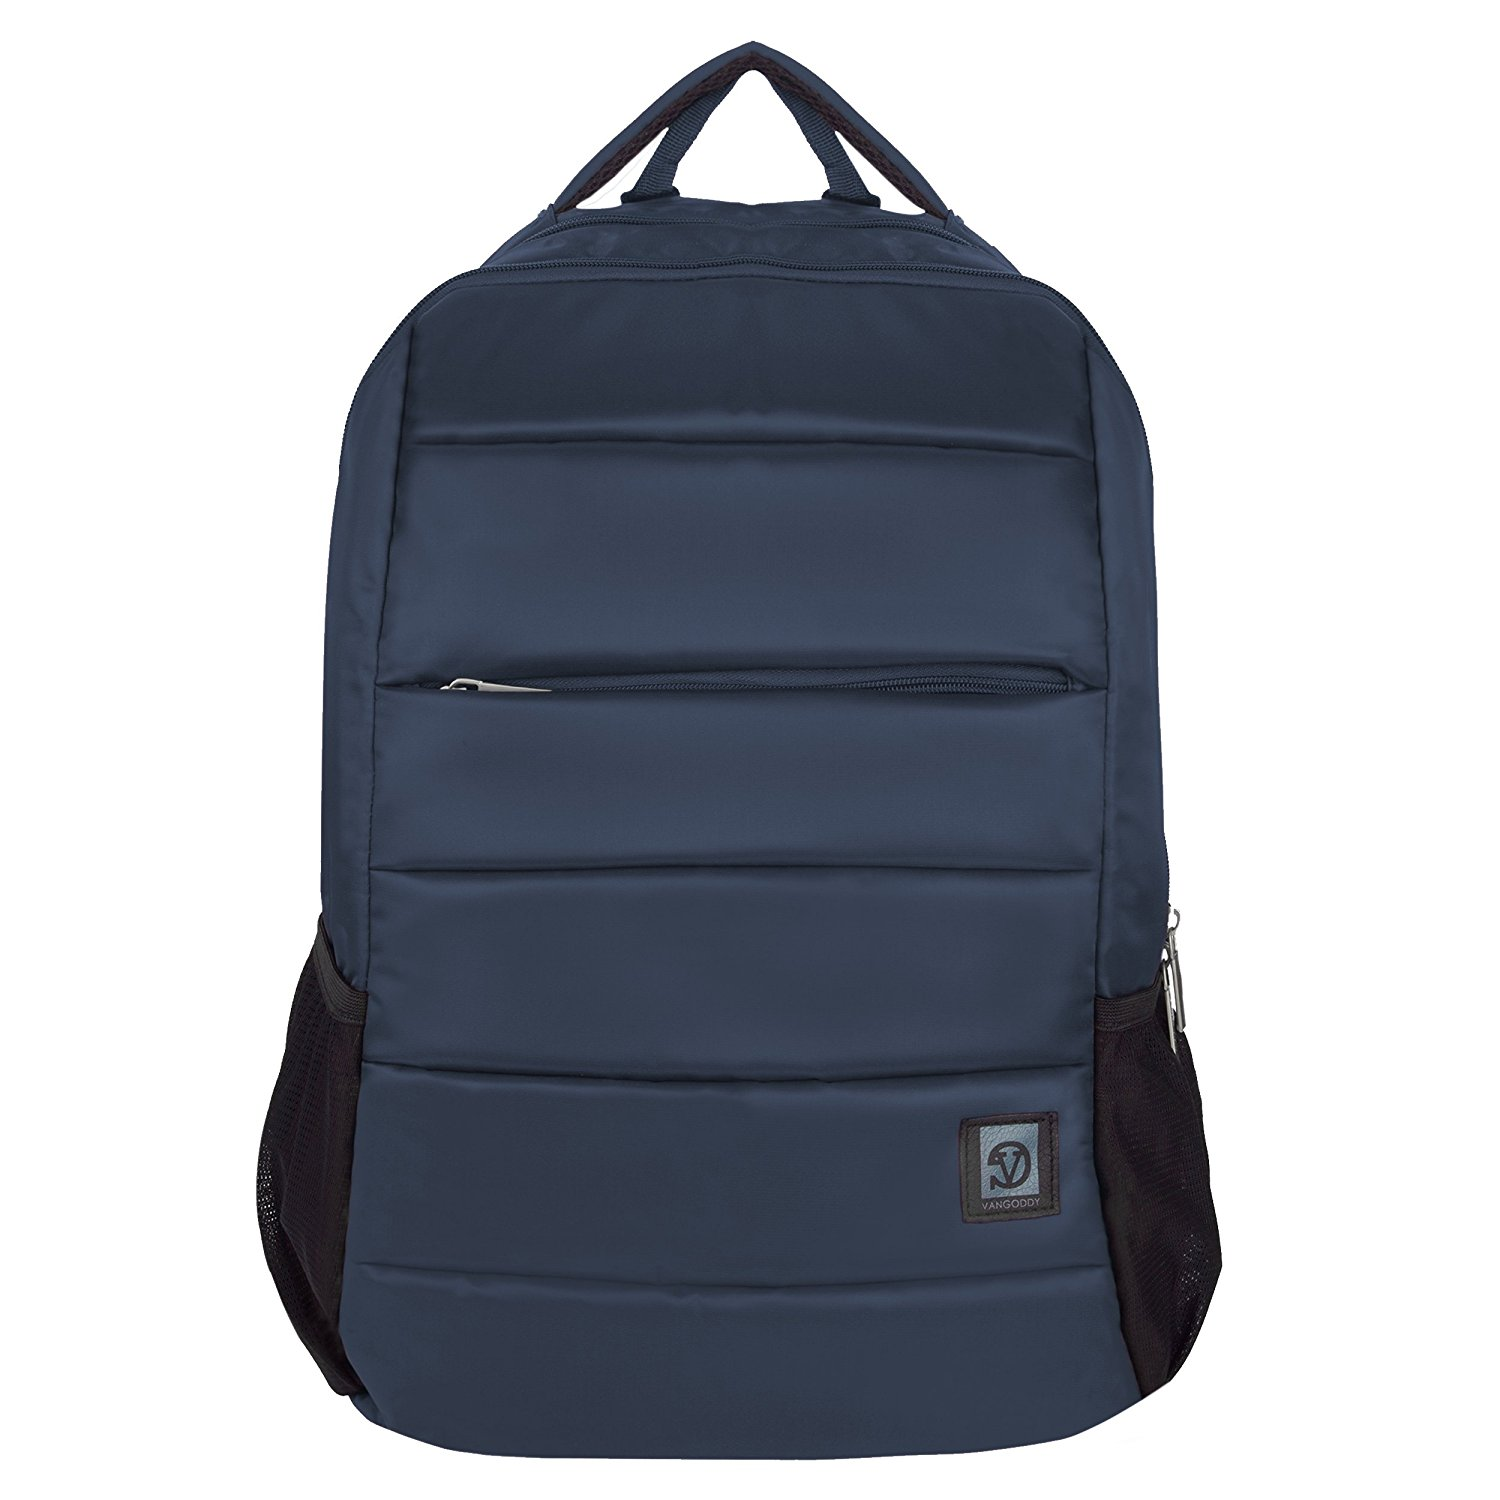 VanGoddy Supero Steel Blue Carry All Backpack for Samsung NoteBook 9 / Pro / Spin / ChromeBook / TabPro S / Up to 15inch